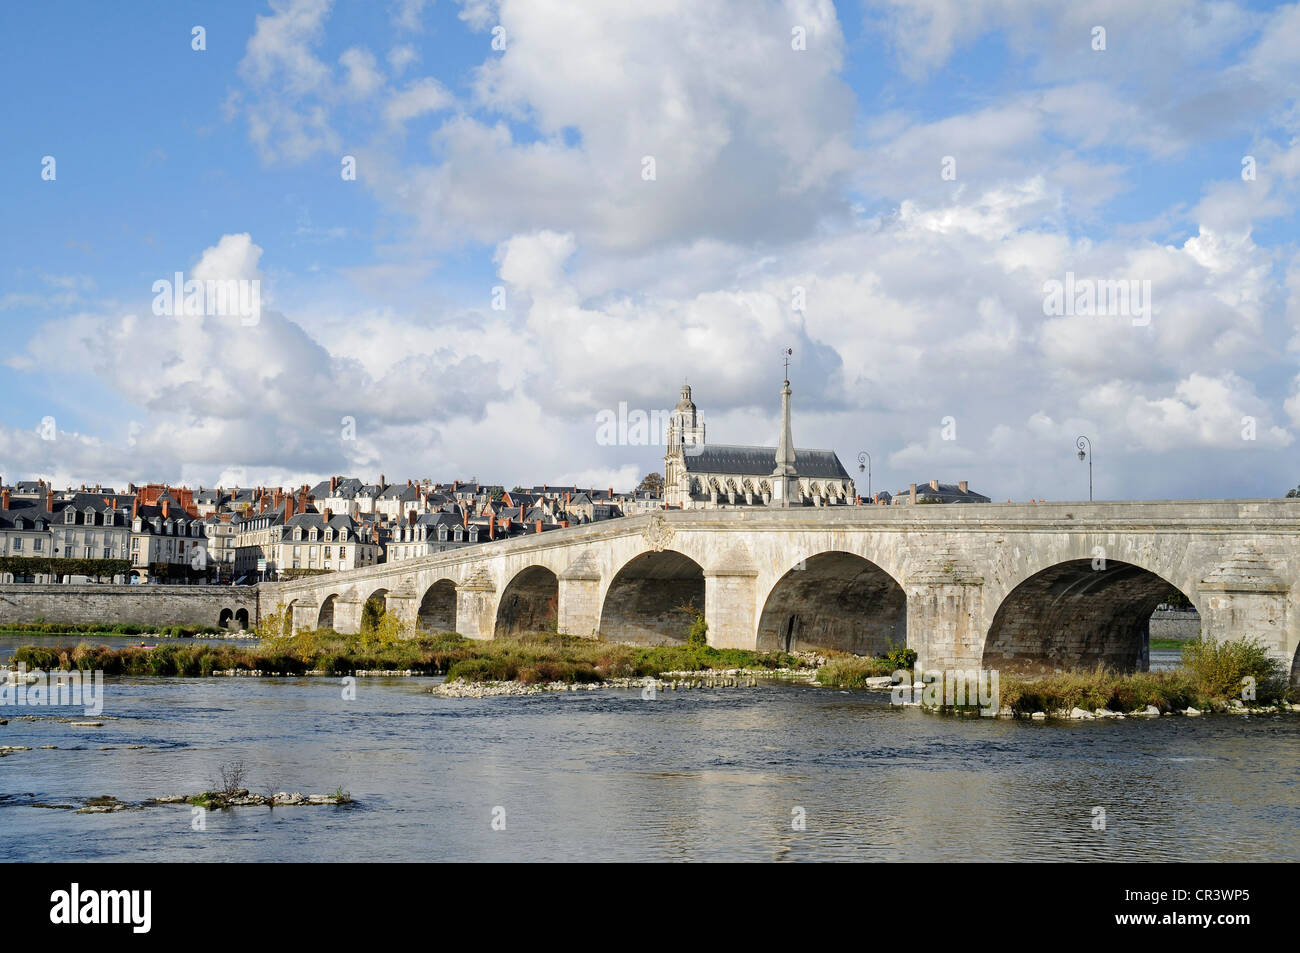 Pont Jacques Gabriel across the Loire river, Cathedrale Saint-Louis, Blois, Loir-et-Cher, Centre, France, Europe, - Stock Image